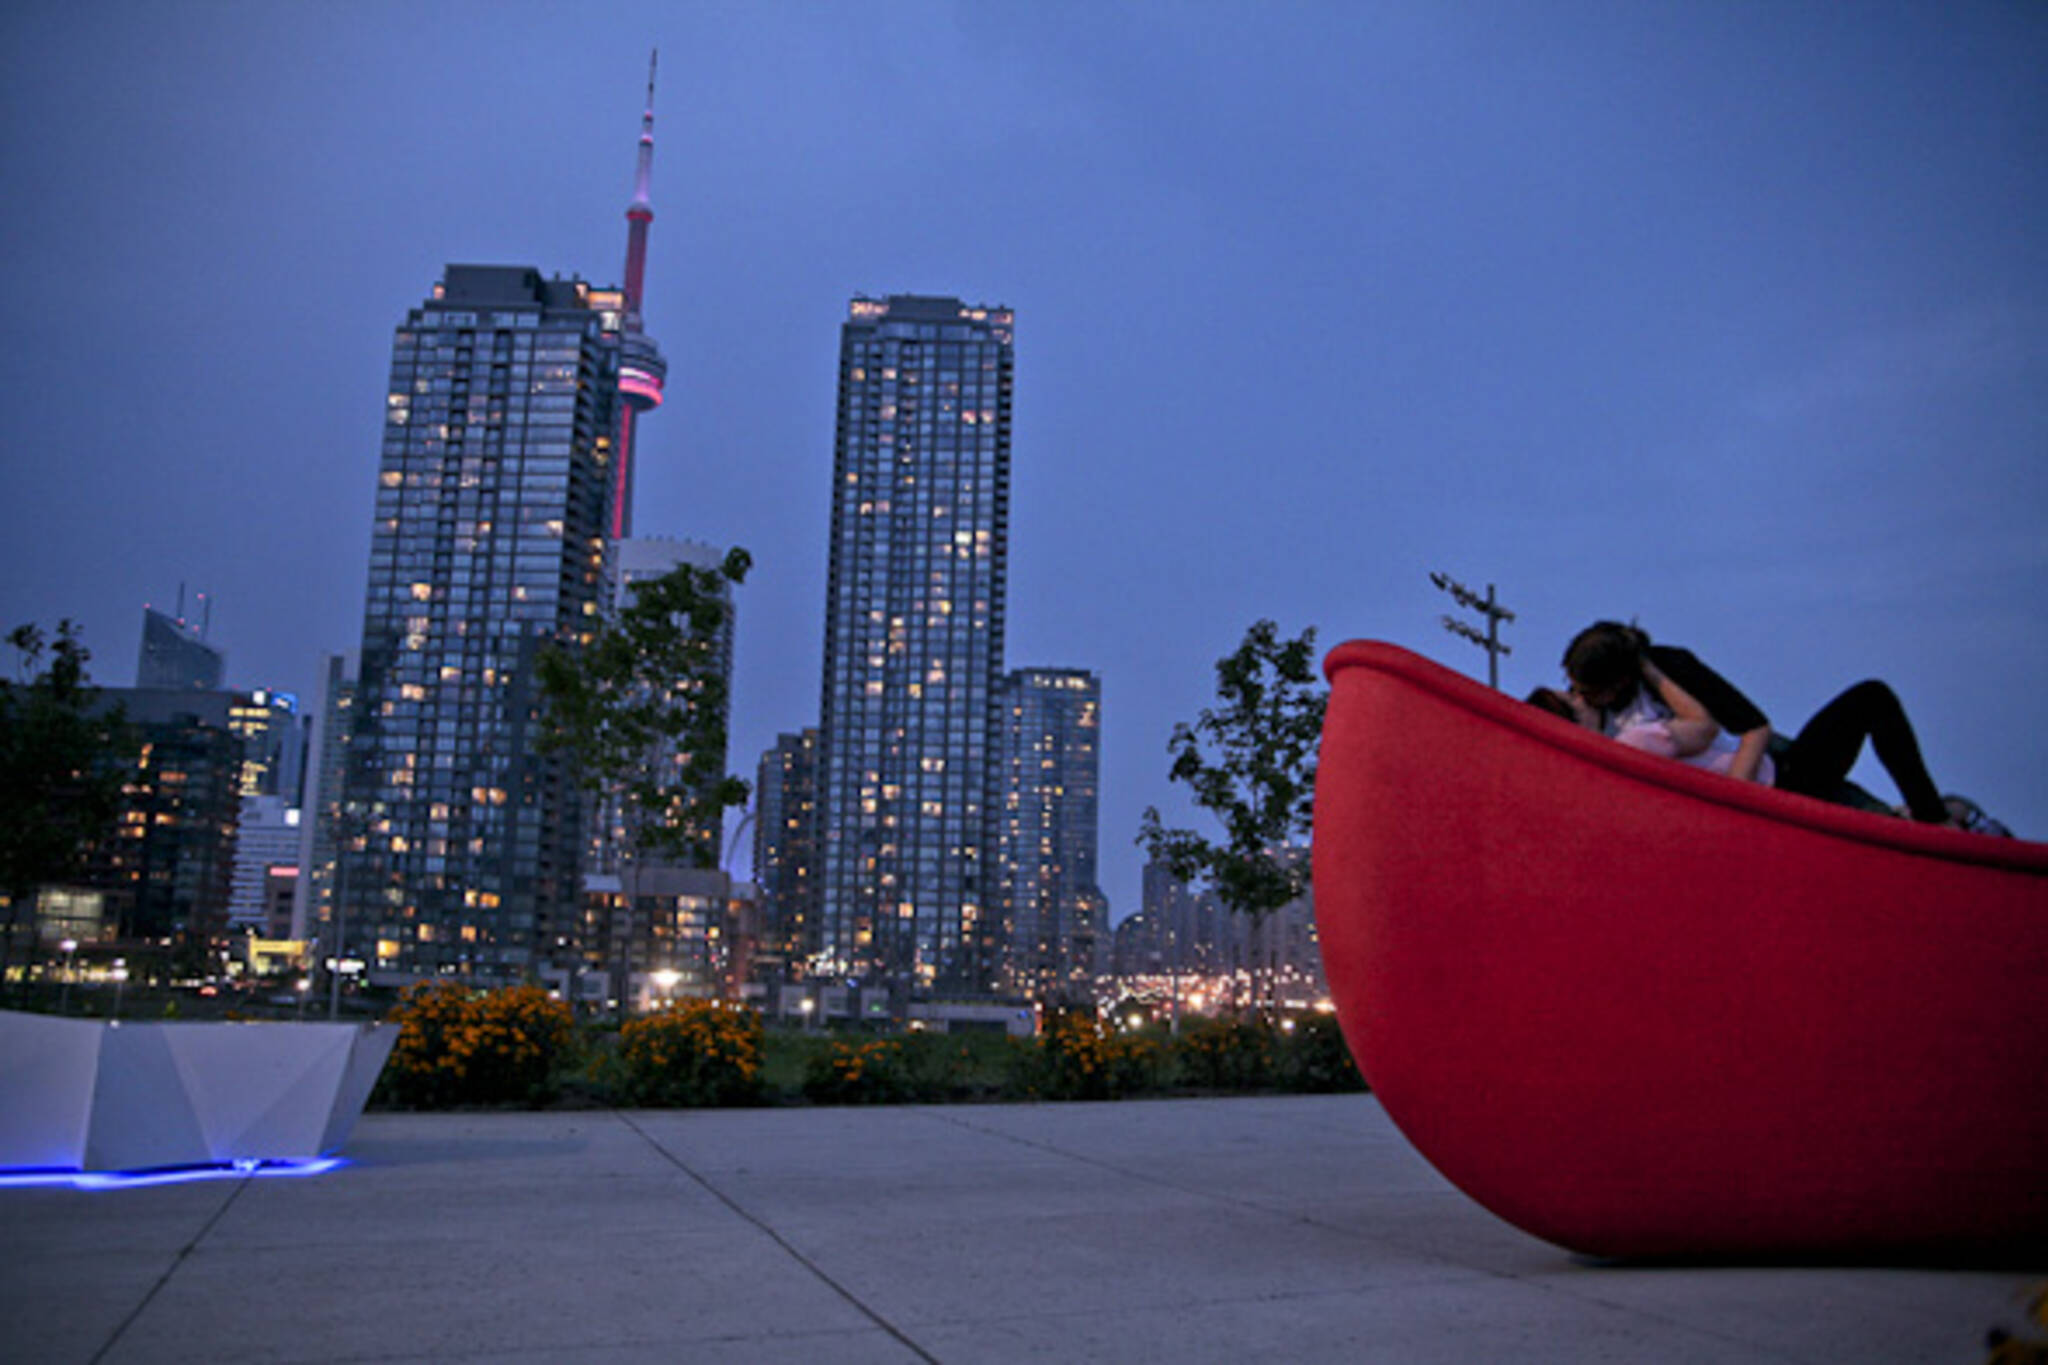 Red Canoe Cityplace